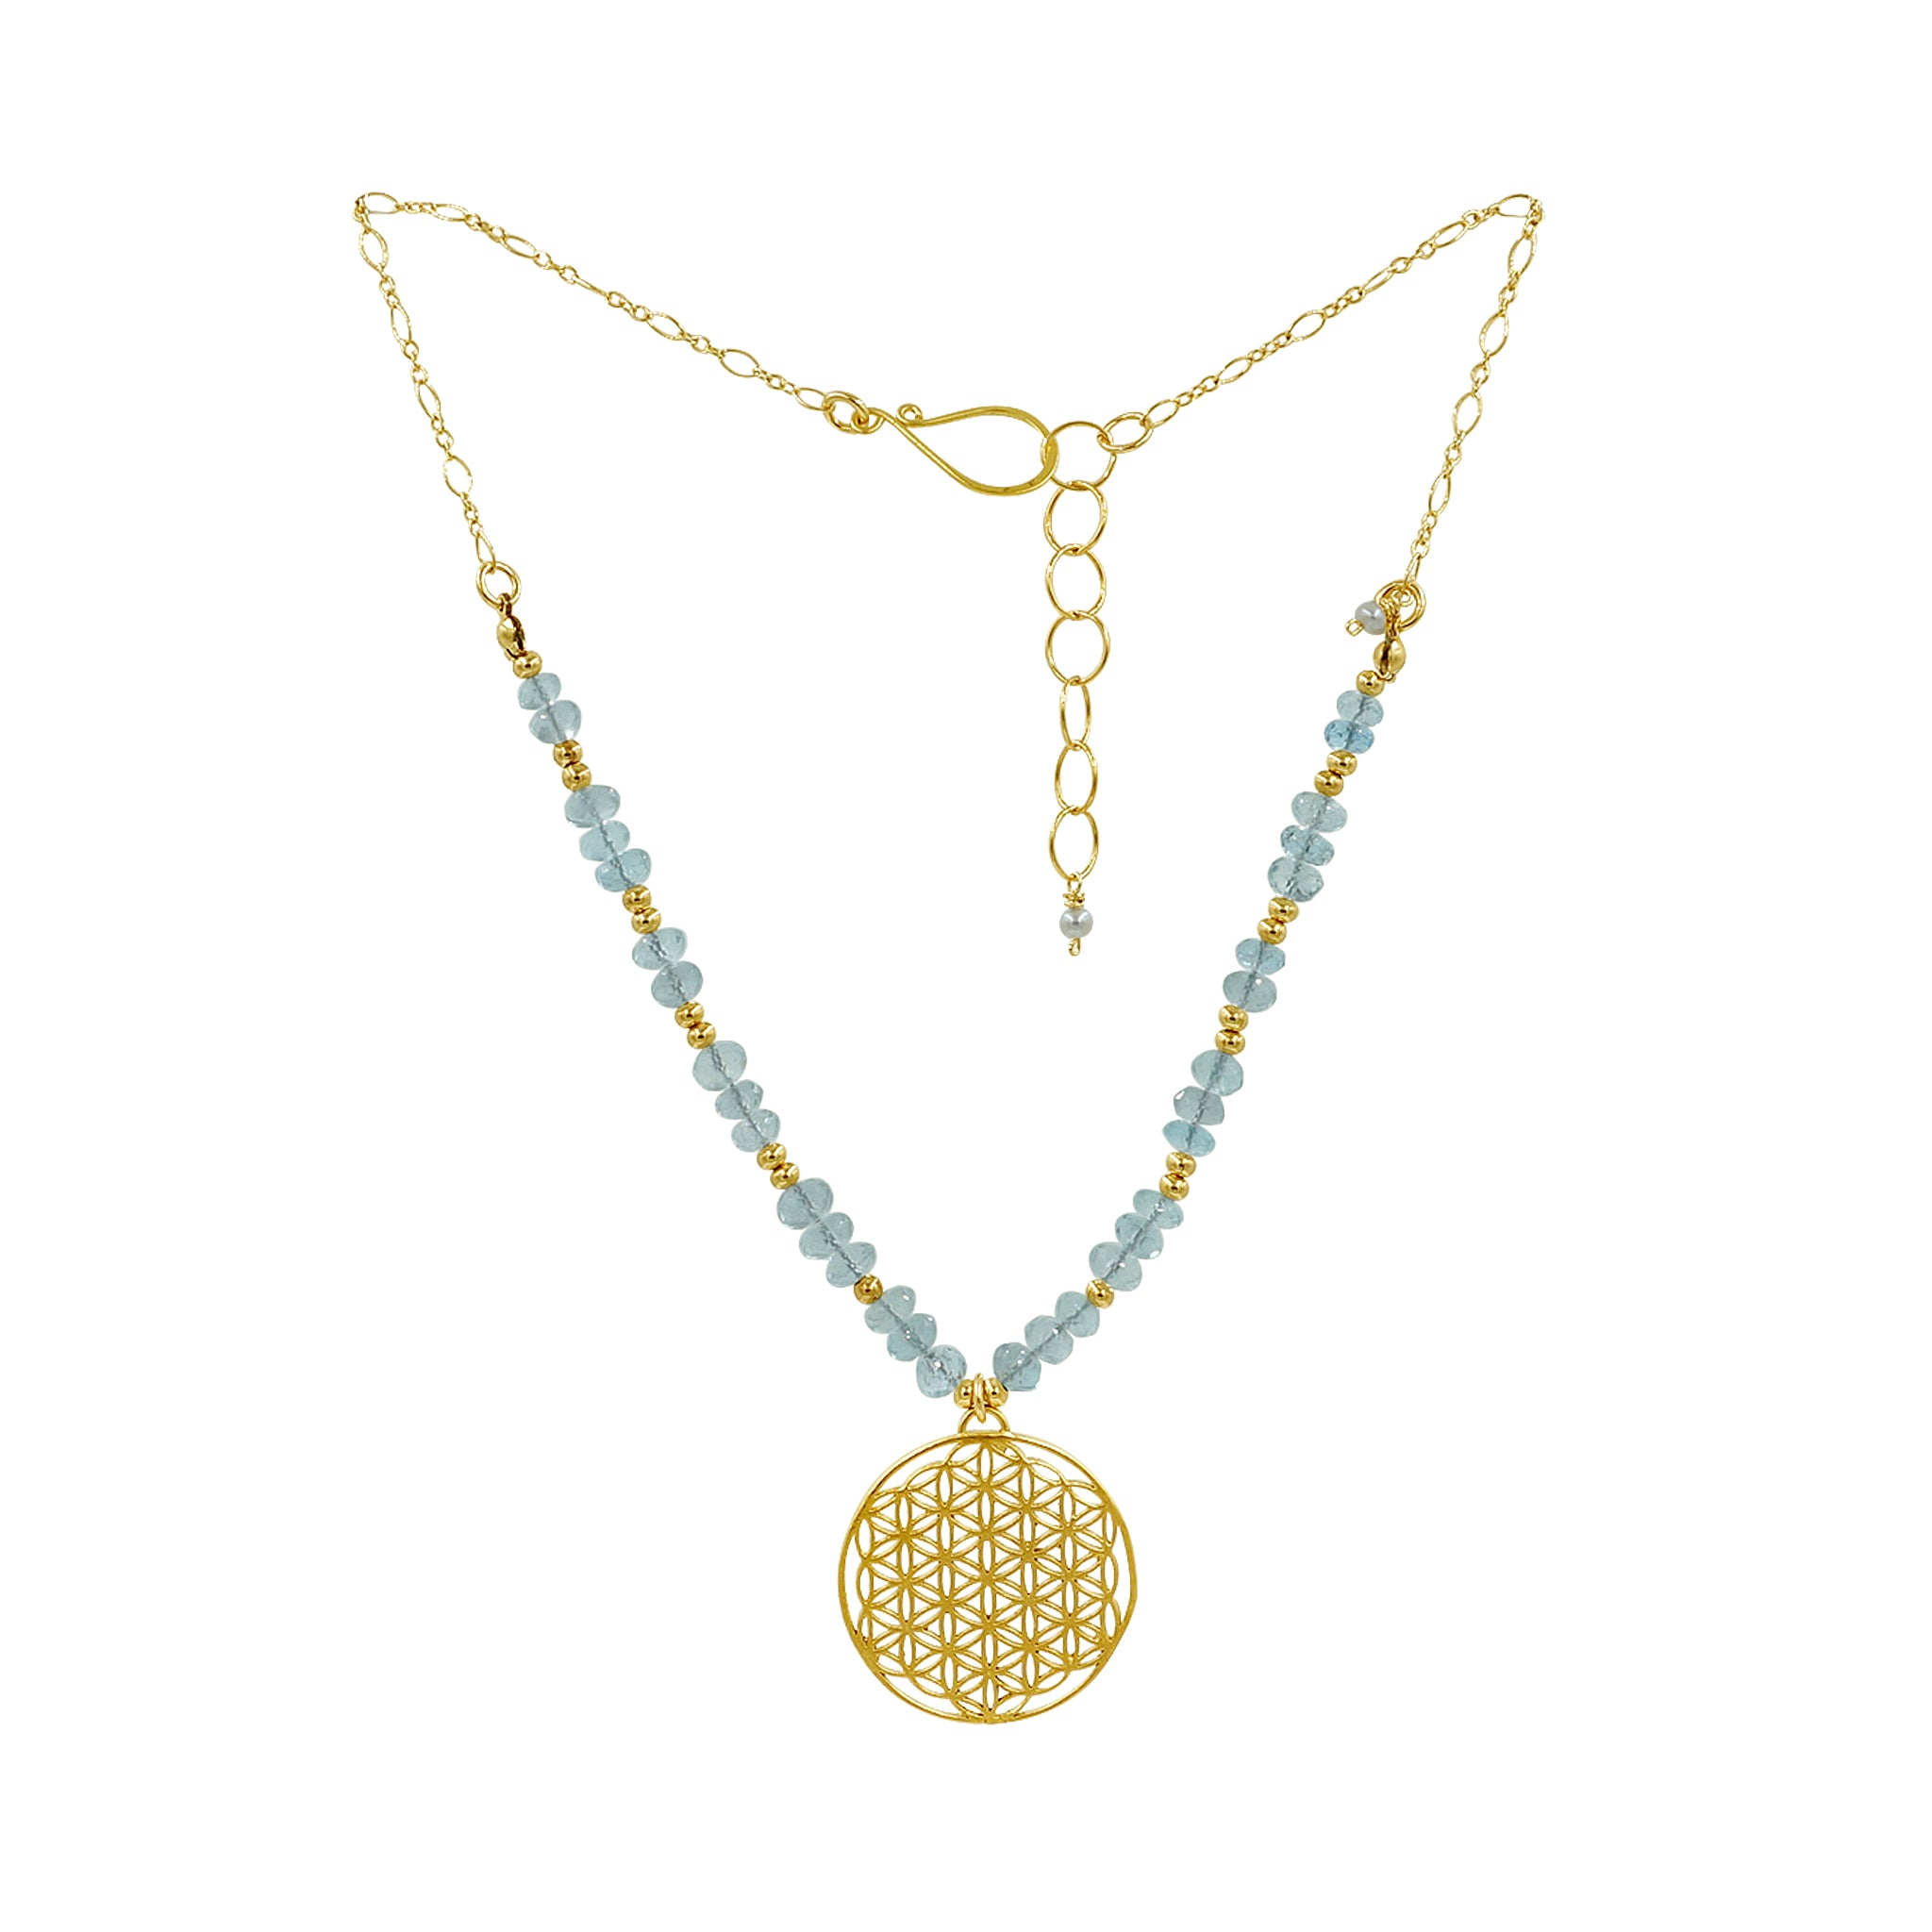 Healing Aquamarine Gemstone Gold Flower of Life Necklace - Sati Gems Hawaii